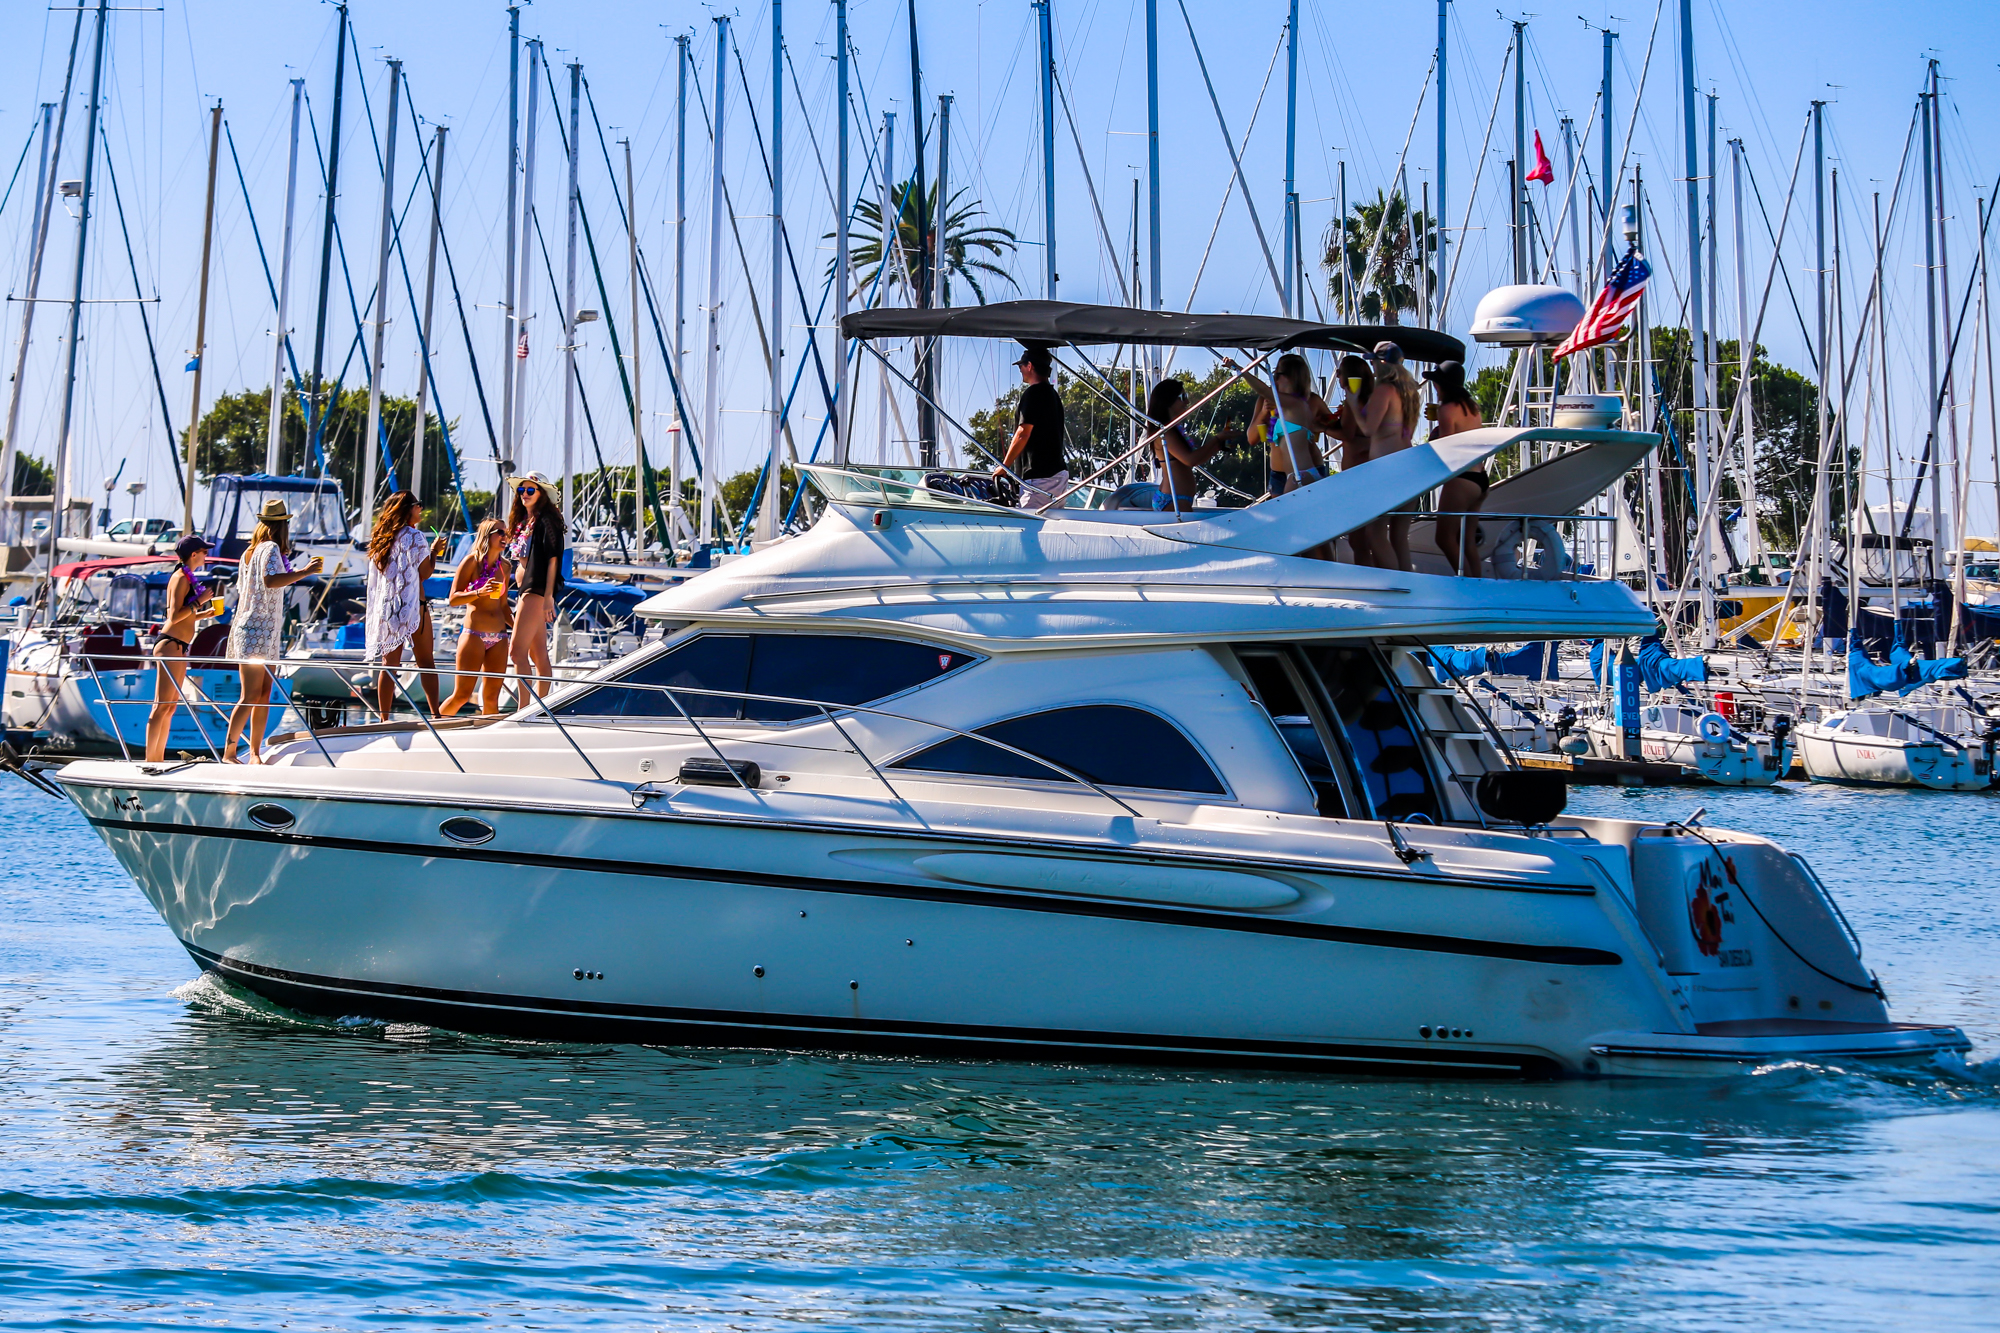 Book your charter today with Mai Tai